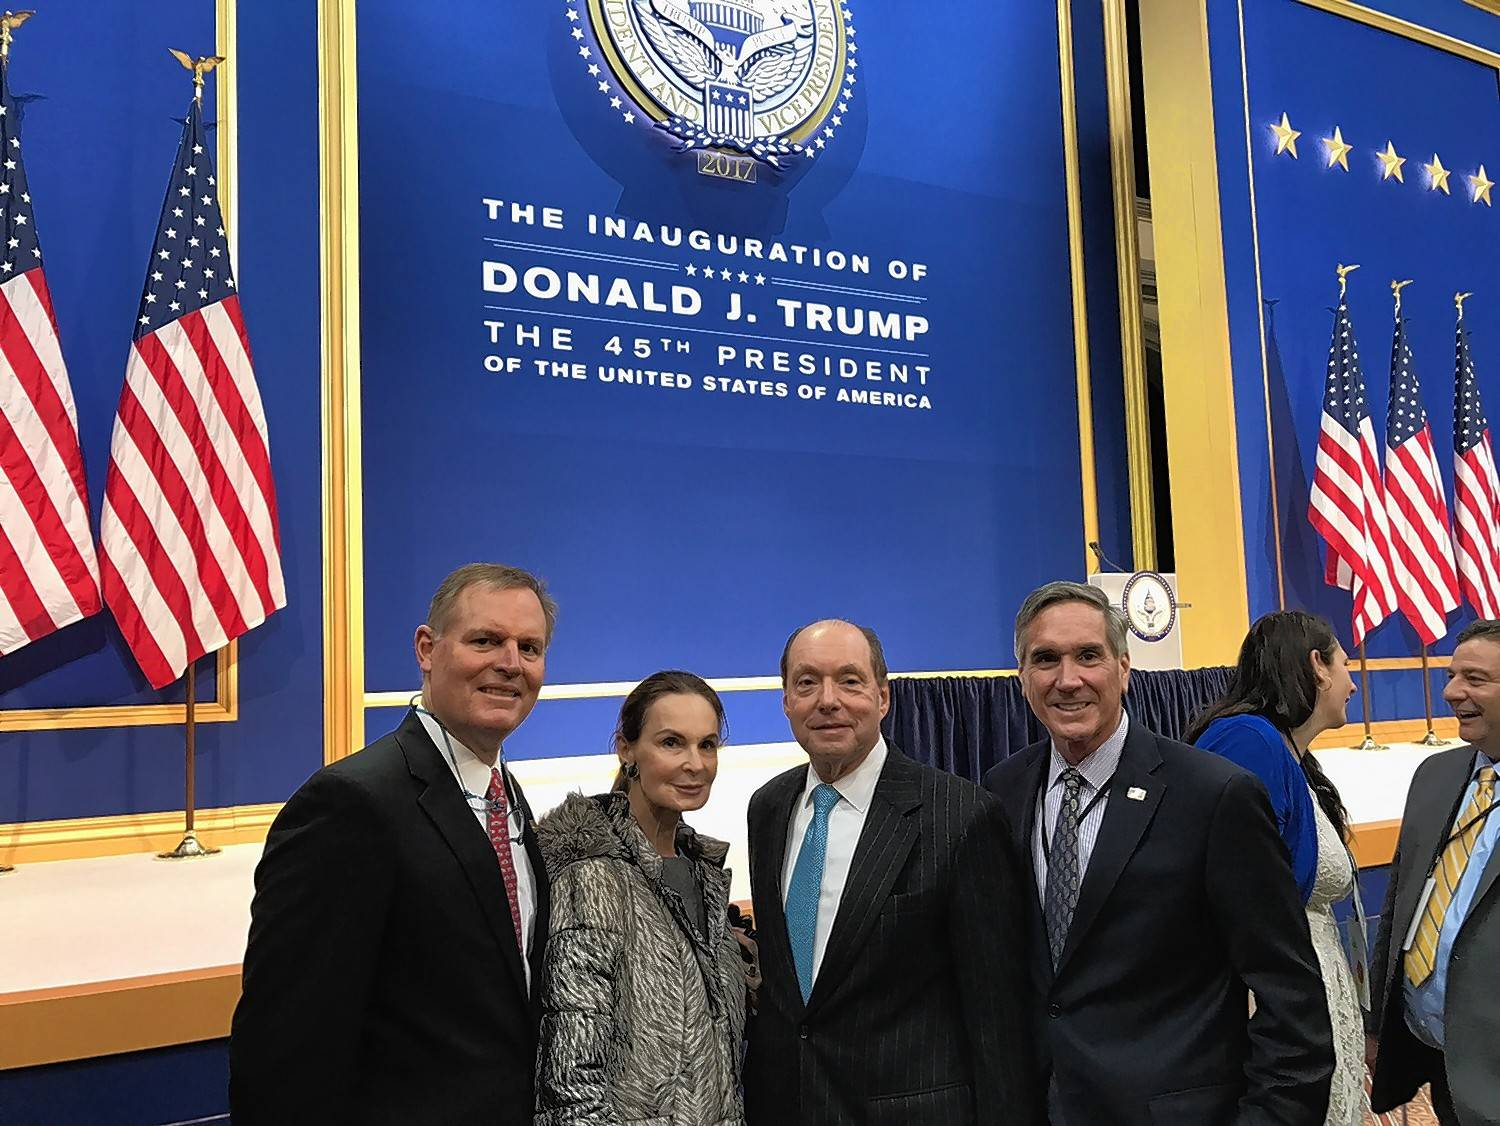 From left, Republican National Committeeman Richard Porter of Winnetka, Christina and Ron Gidwitz of Chicago and Illinois GOP Chairman Tim Schneider of Bartlett posed for a photo at an inauguration reception in Washington.